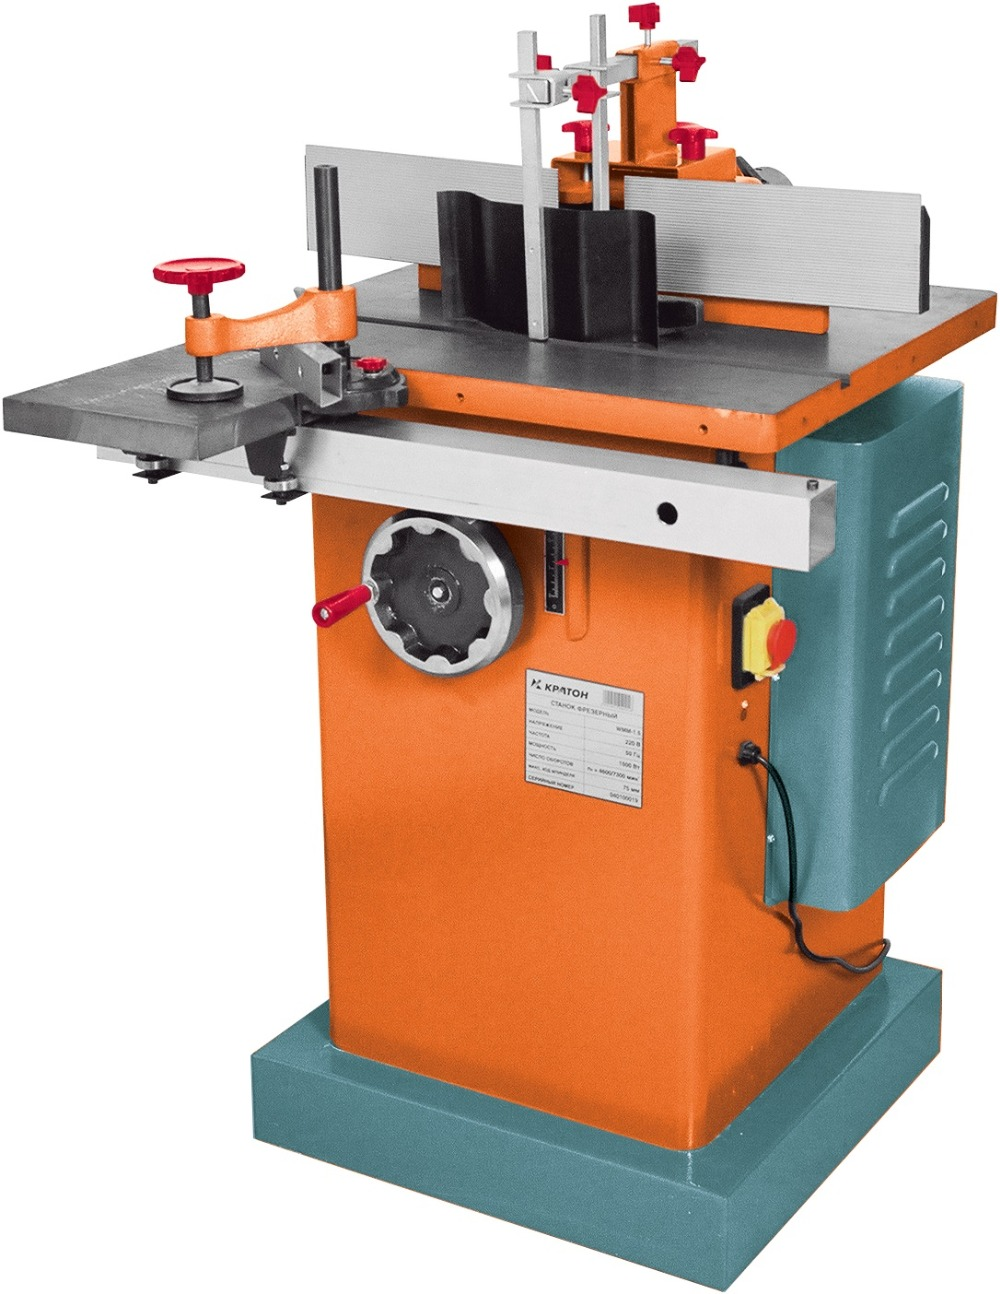 Vertical milling machine Kraton WMM-1,5 pcb milling machine cnc 2020b diy cnc wood carving machine mini engraving machine